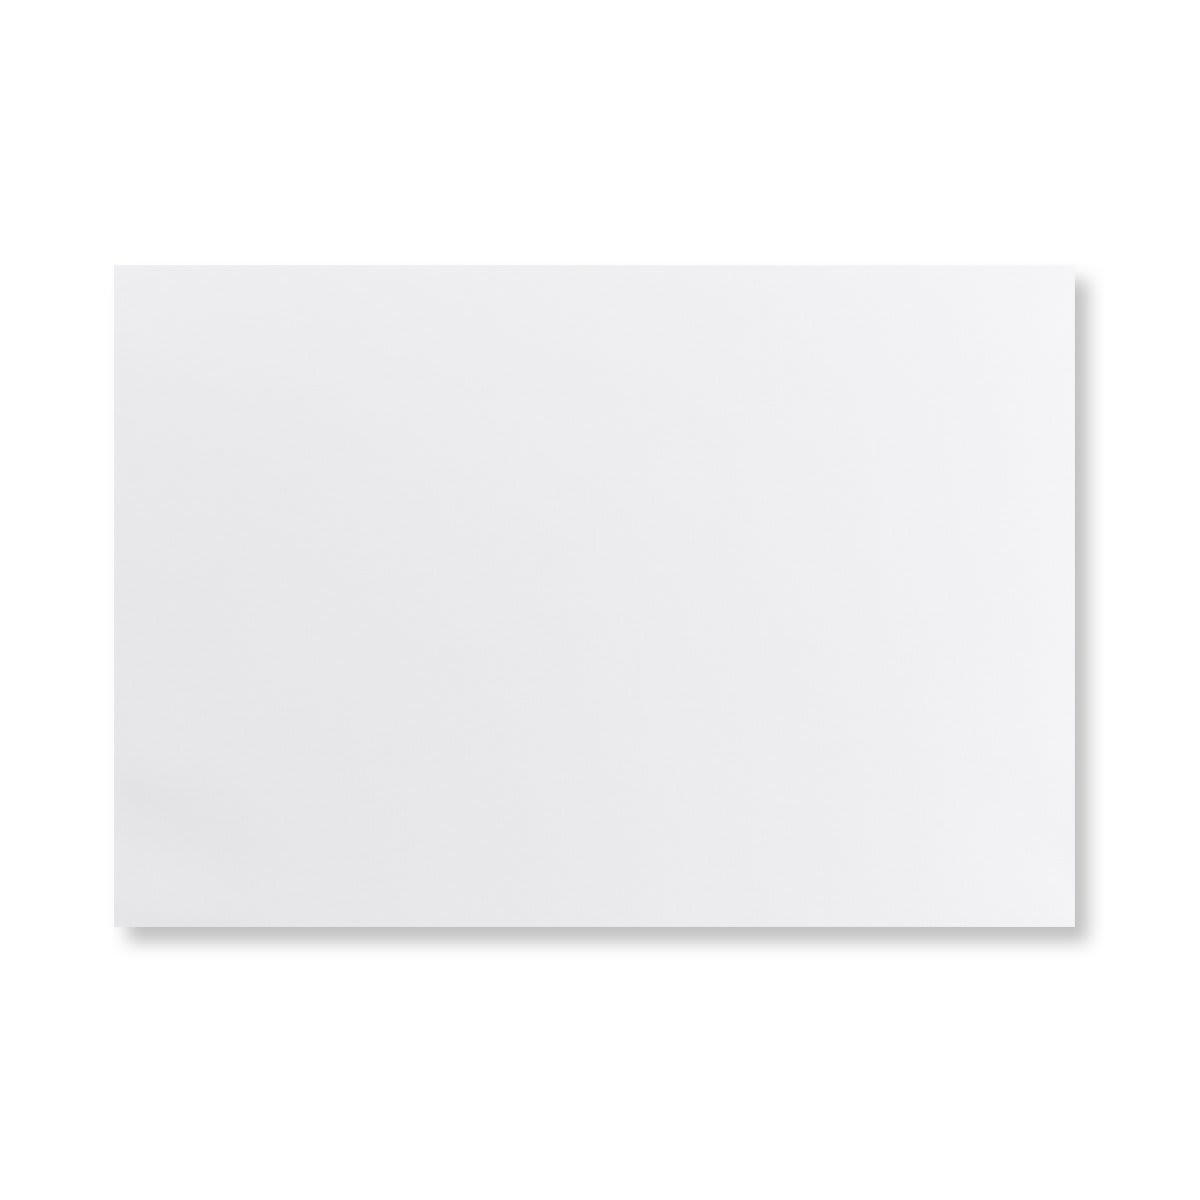 C5 ULTRA WHITE 120GSM WALLET PEEL AND SEAL ENVELOPES